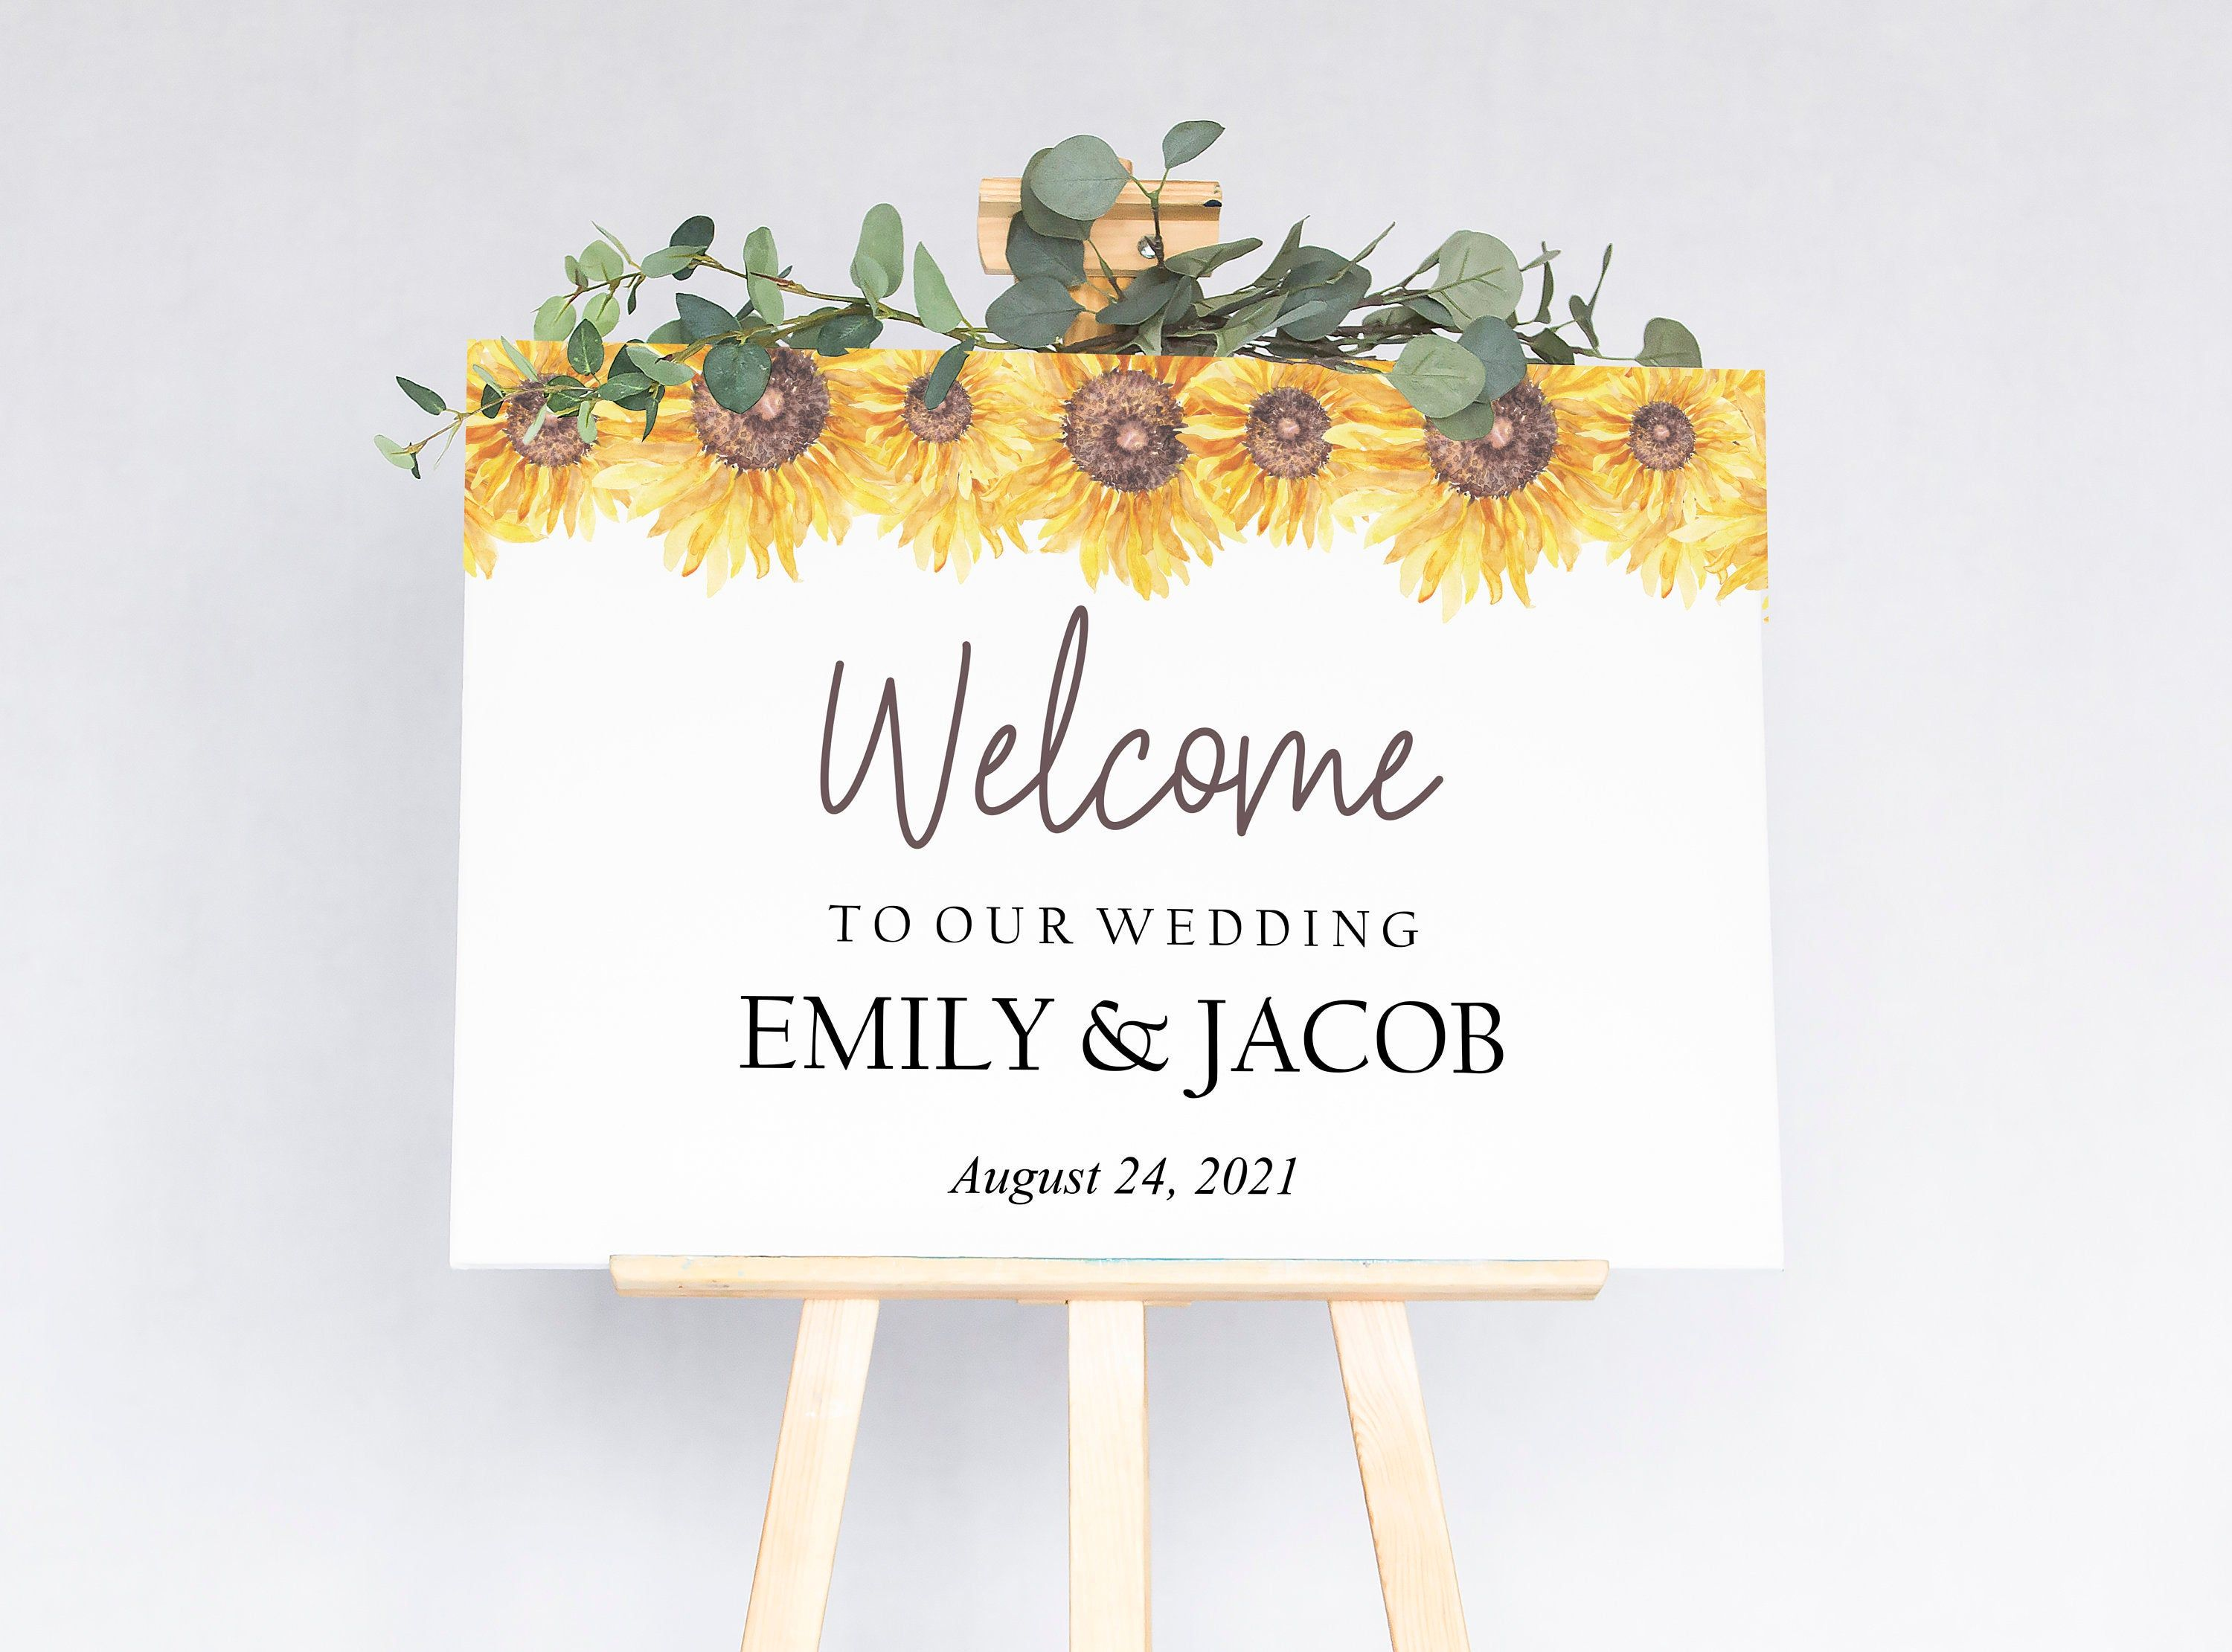 Sunflower Wedding Welcome Sign Template Printable Floral Etsy Wedding Welcome Signs Sunflower Wedding Sign Templates